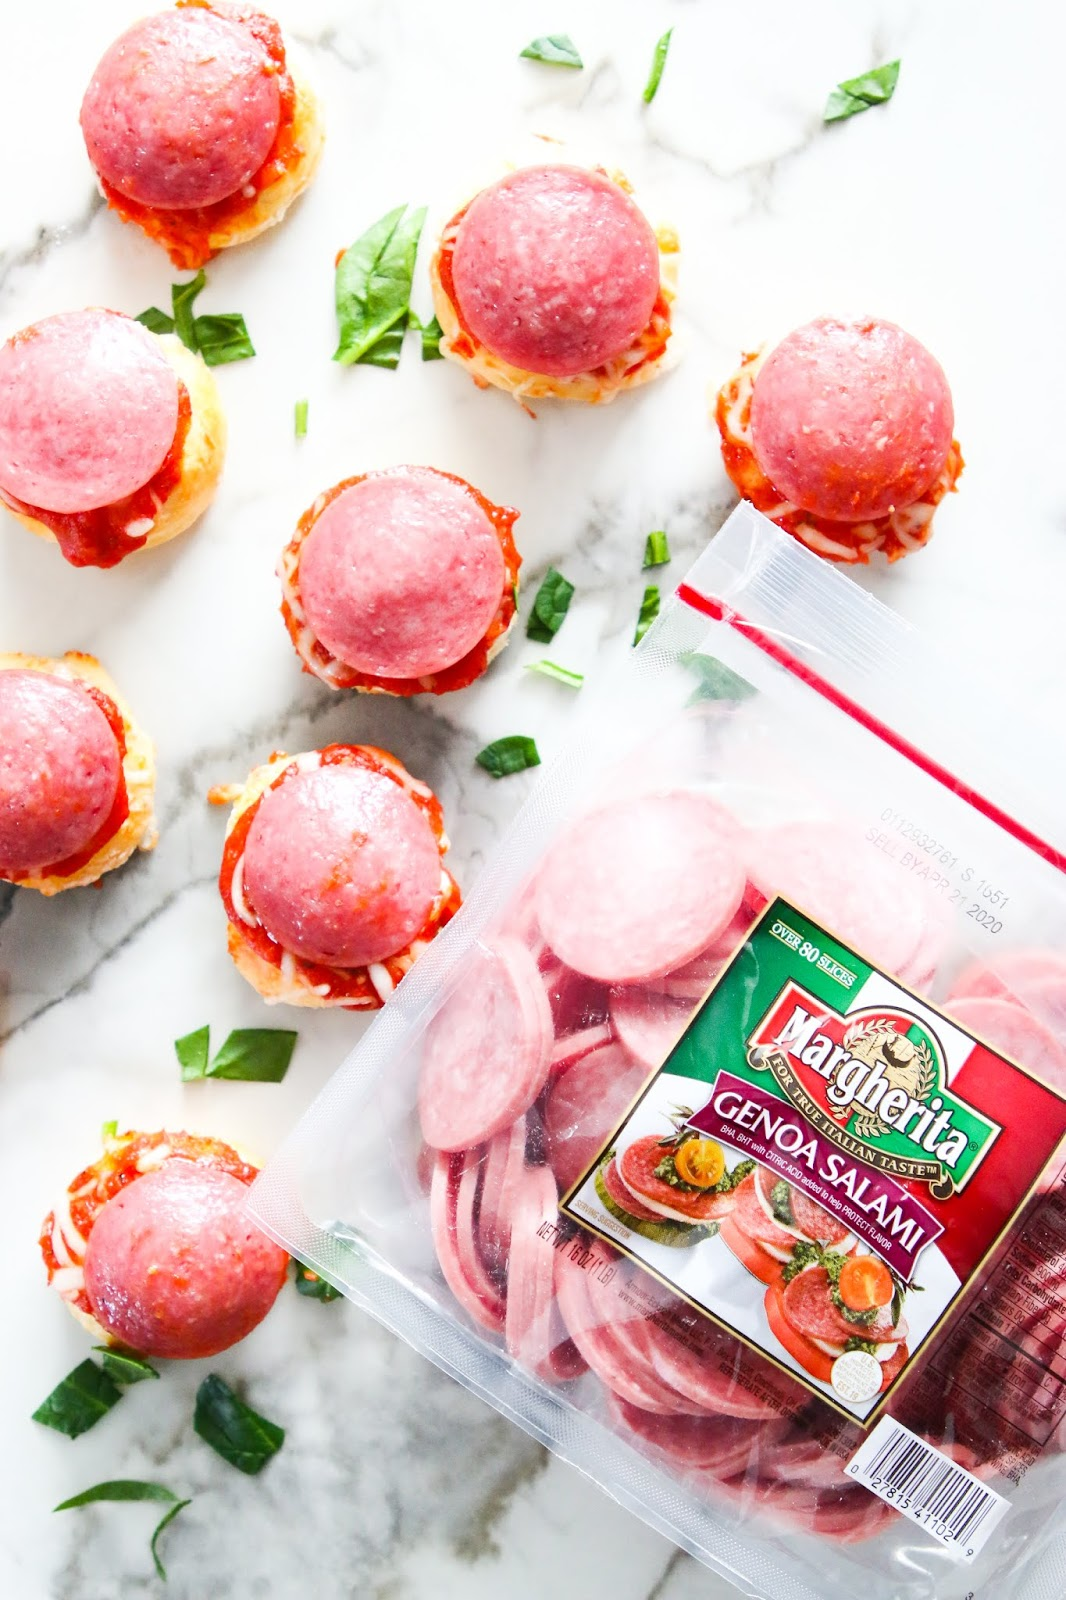 Pizza bagel bites instructions. Stuffed bags bites recipe. Pizza bagel bites bake time. Pizza bagel bites calories. Pizza bagel bites Walmart. Pizza bagel bites ingredients. Pizza bagel bites in sir fryer.